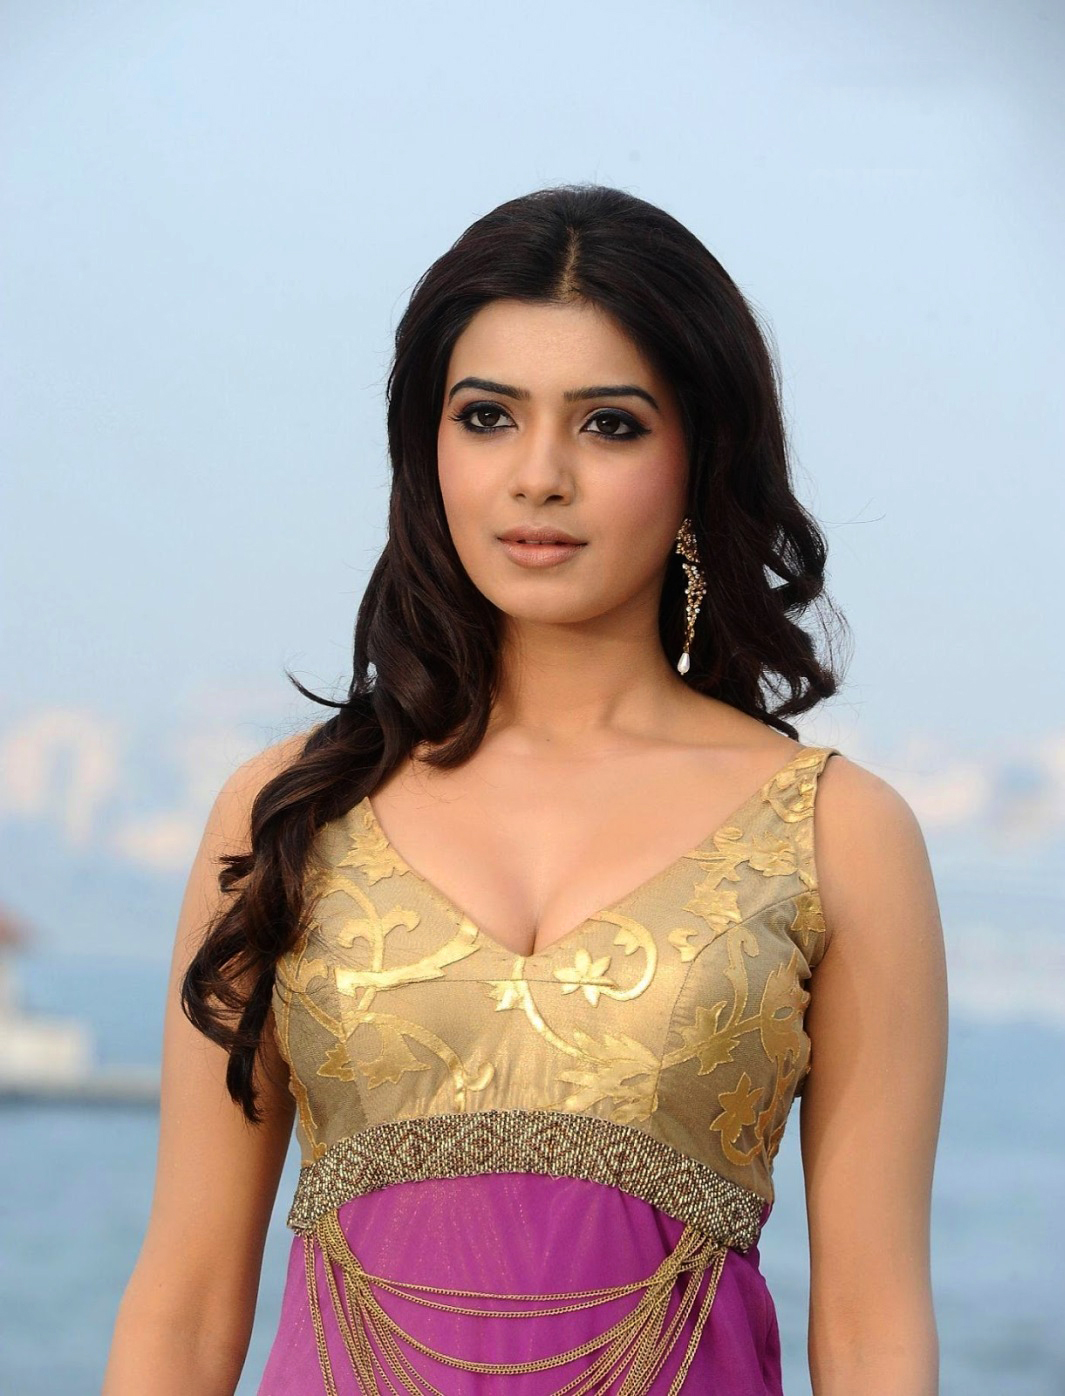 Are not actress samantha ruth prabhu